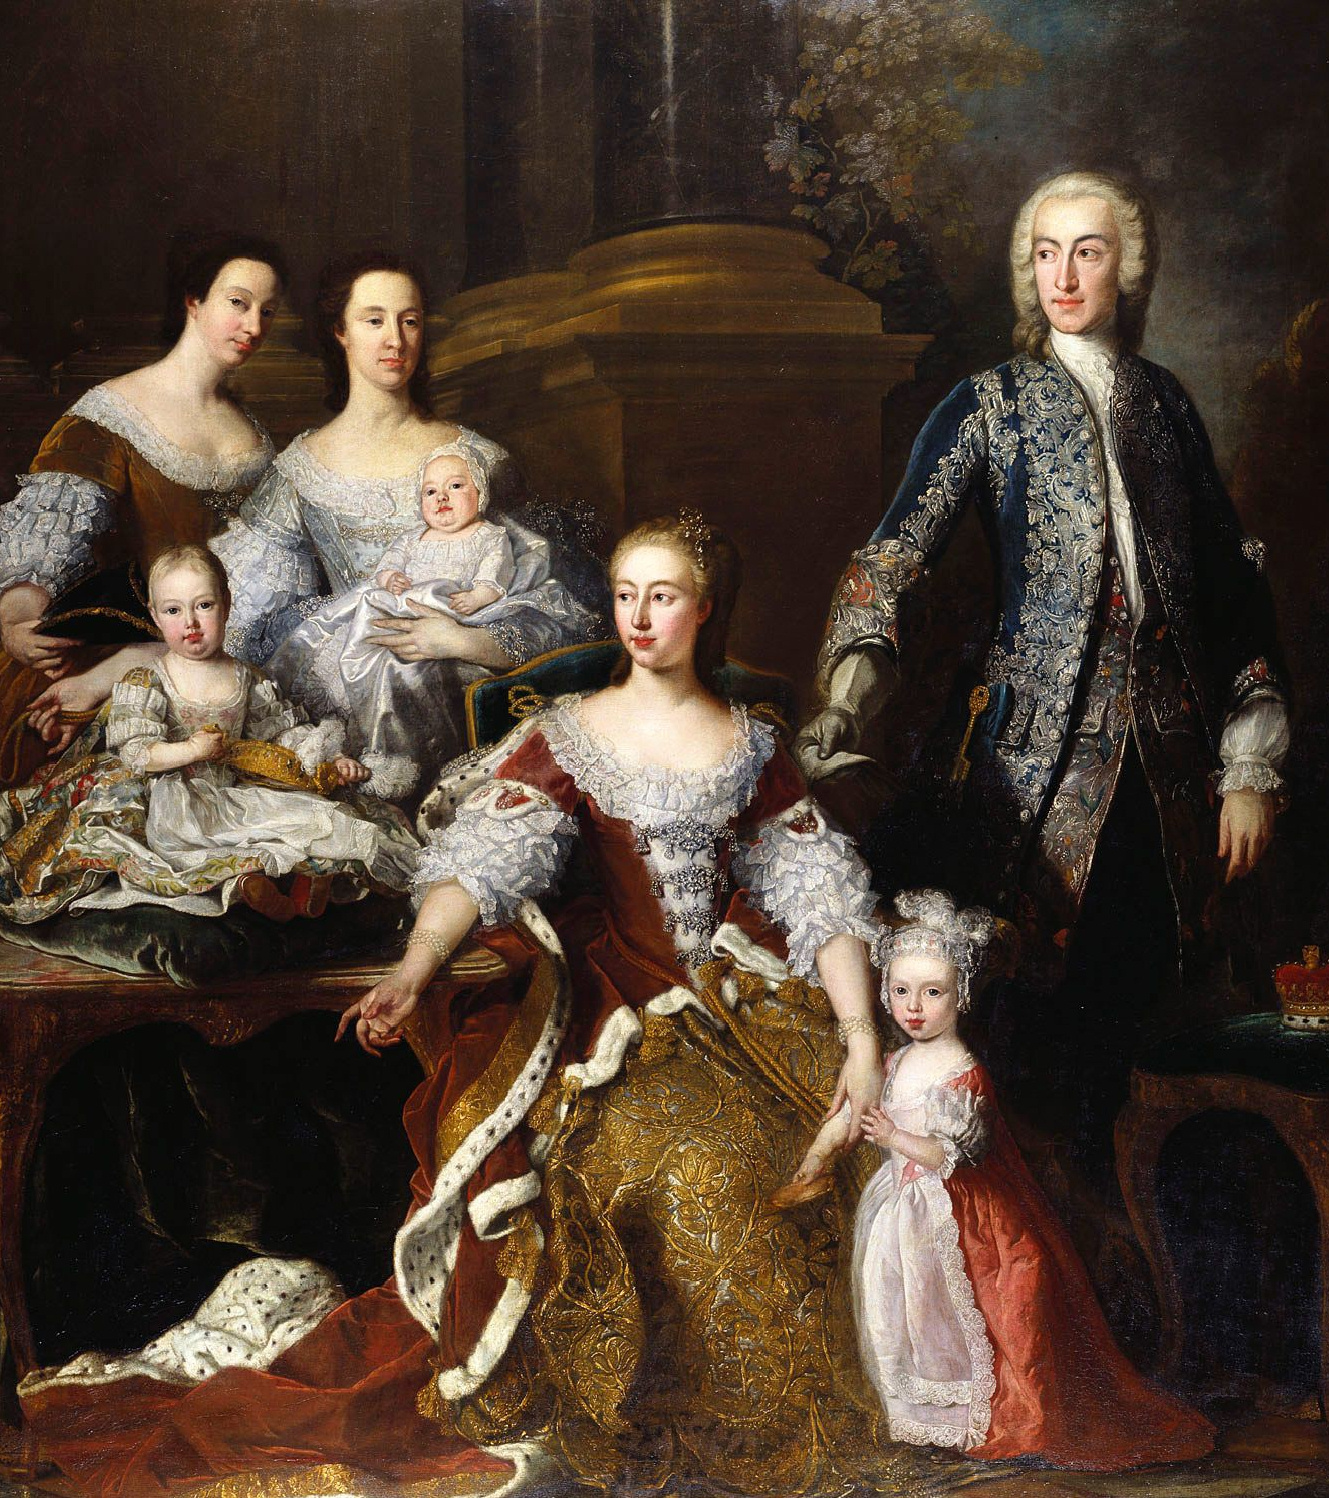 1739 Princess Augusta of Saxe Gotha with Family by Jean-Baptiste van Loo  (Royal Collection)